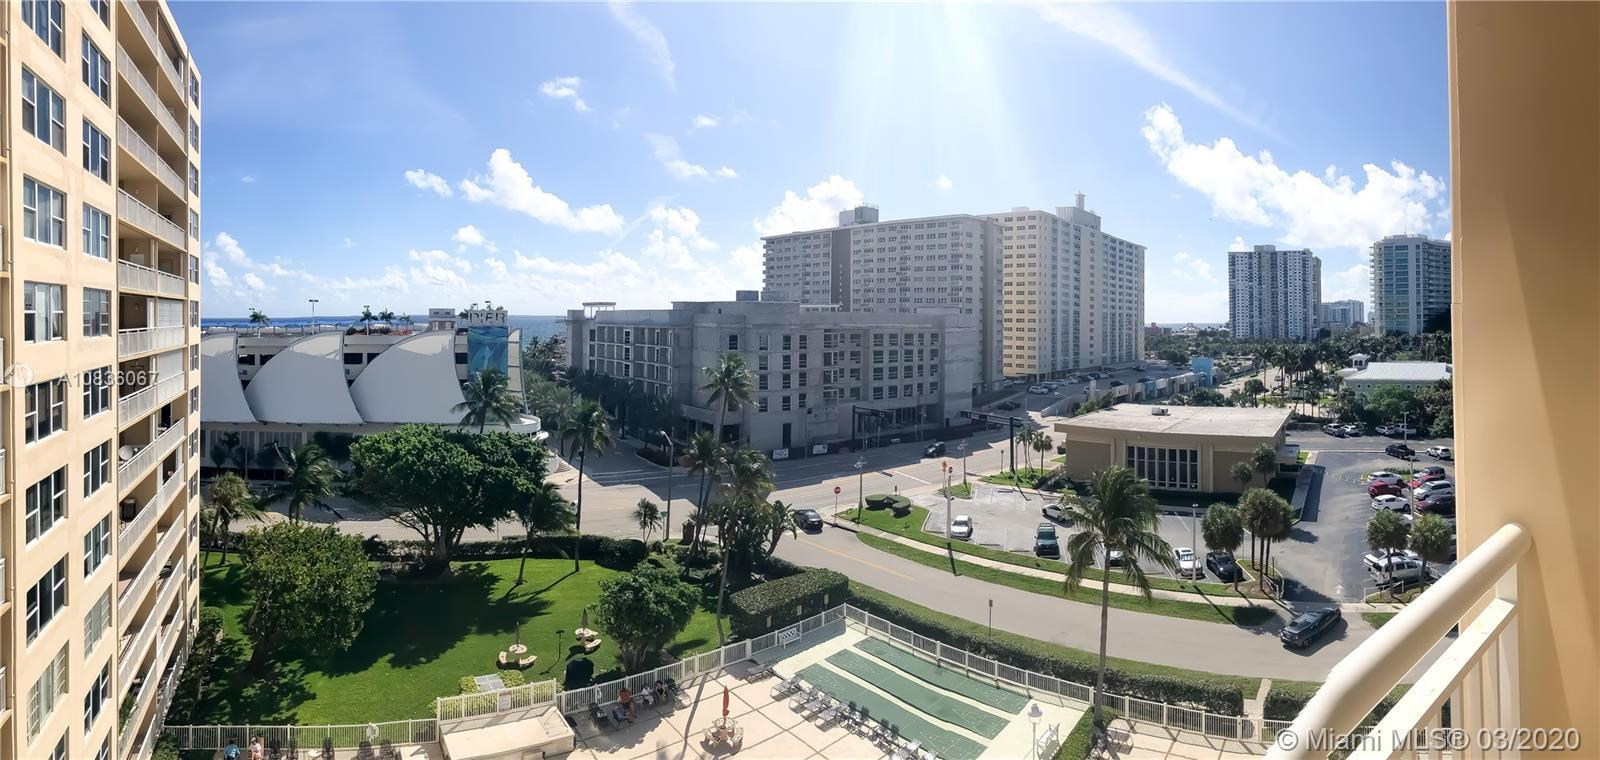 GREAT OCEAN AND INTRACOASTAL VIEWS FROM THIS BEAUTIFUL AND SPACIOUS 1 BEDROOM 1 BATH UNIT WITH LOTS